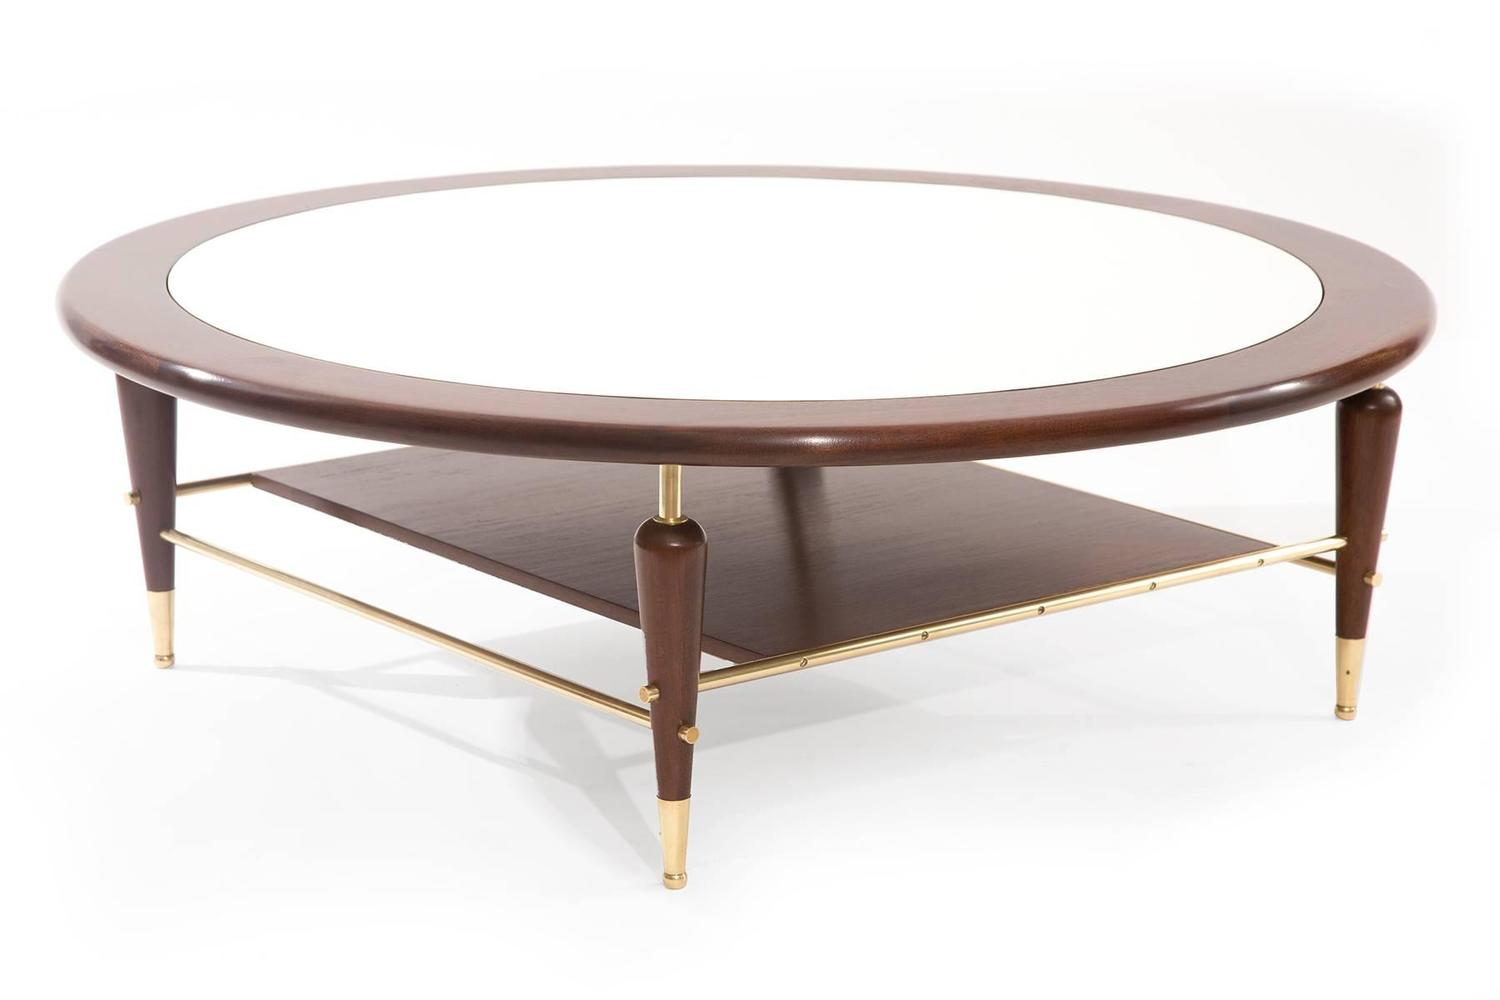 Fabulous Walnut Laminate And Brass Cocktail Table For Sale At 1stdibs